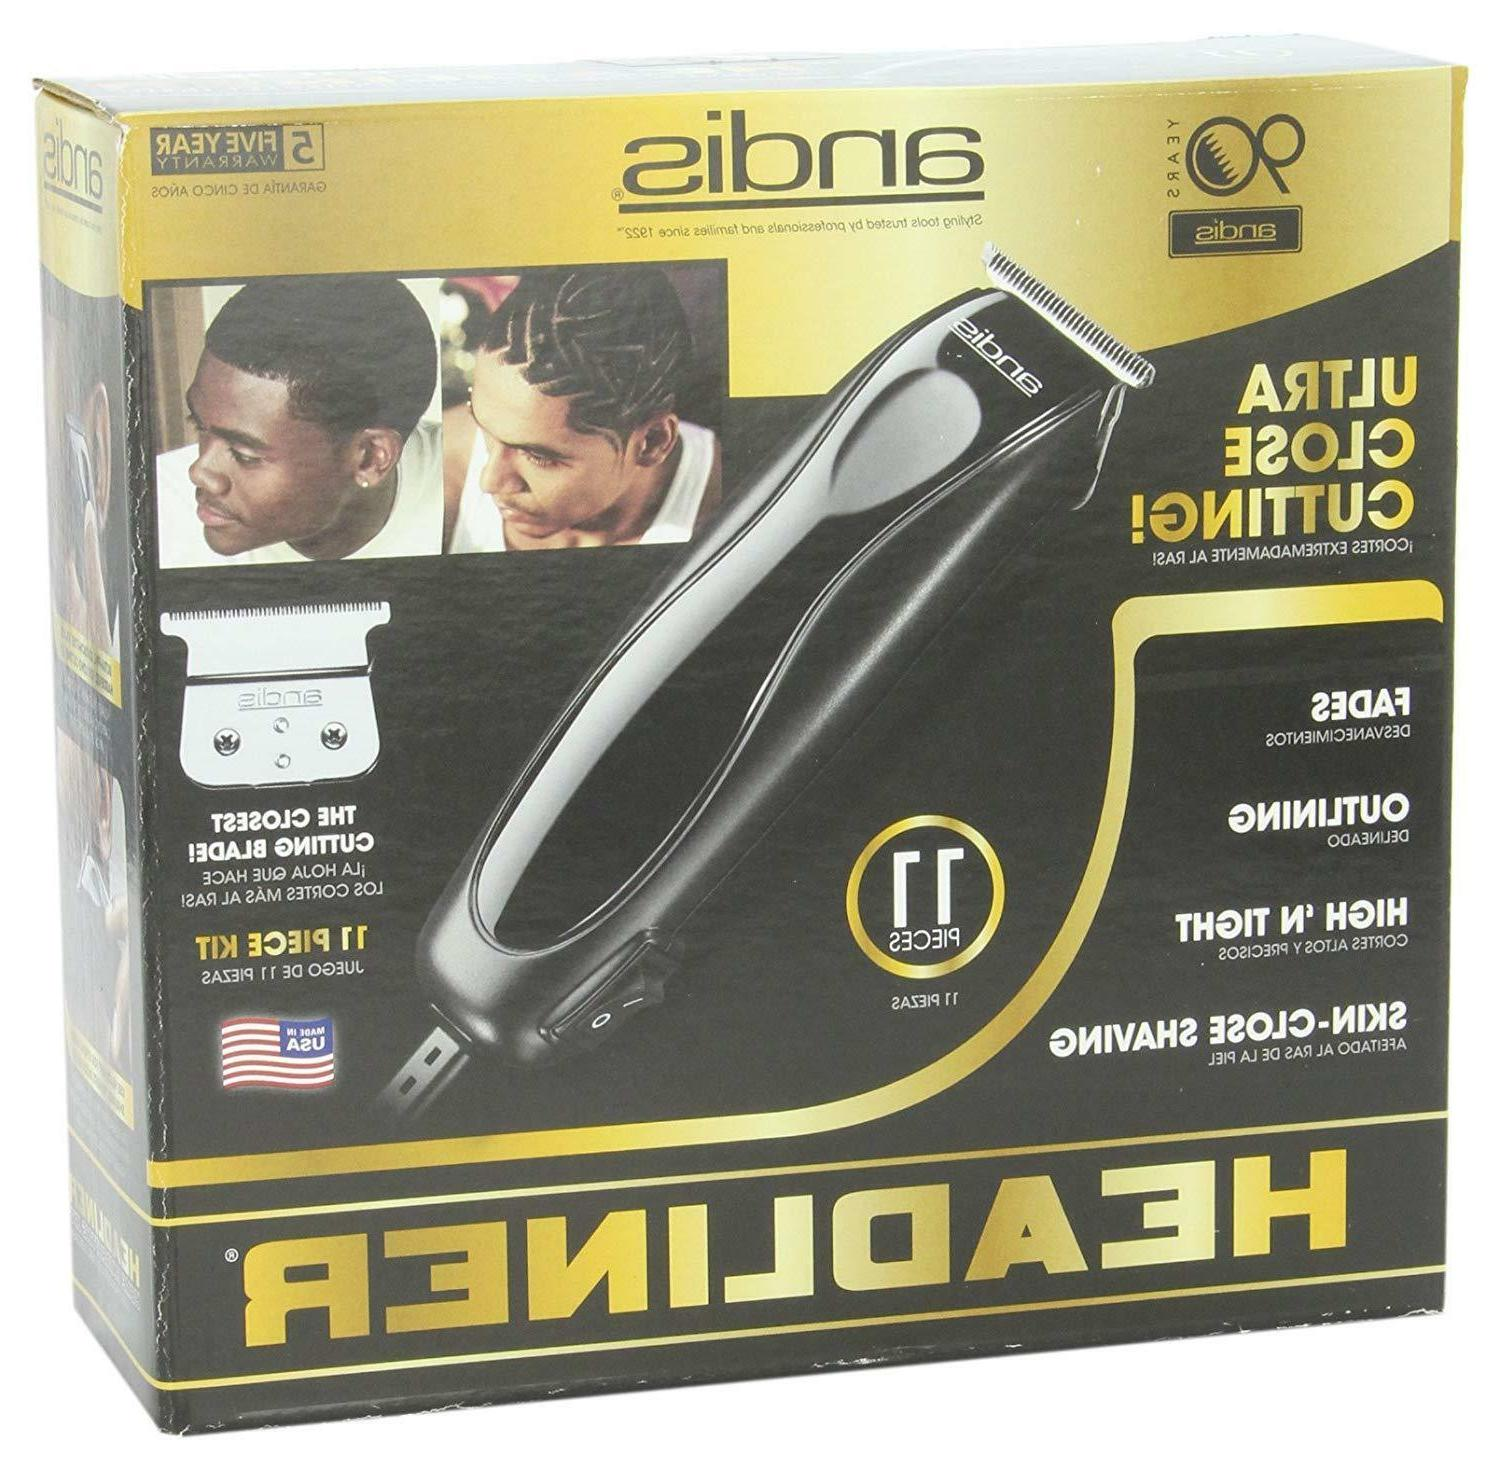 Andis Professional Barber Beard Hair Trimmer Clipper Tool